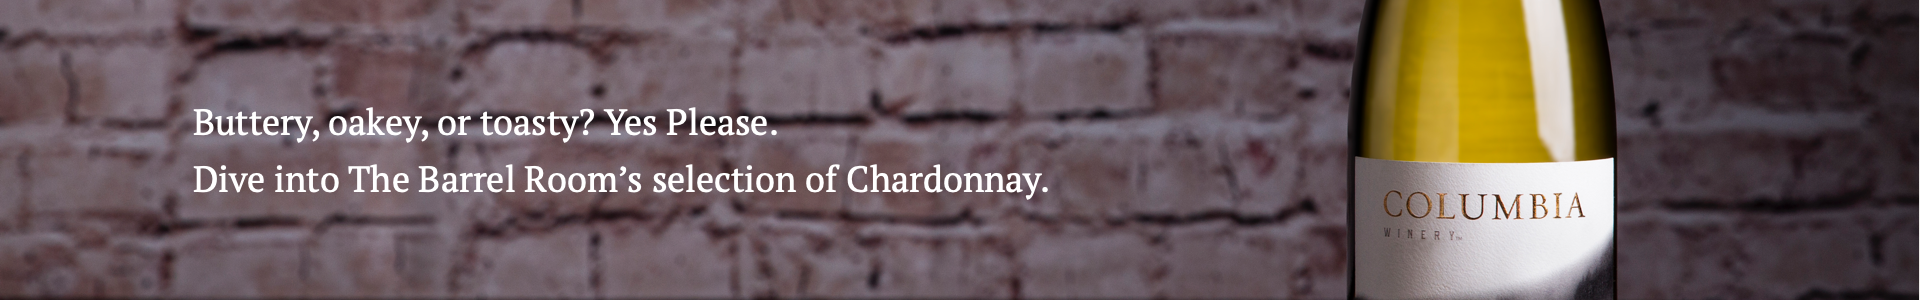 Dive into The Barrel Room's selection of Chardonnay.